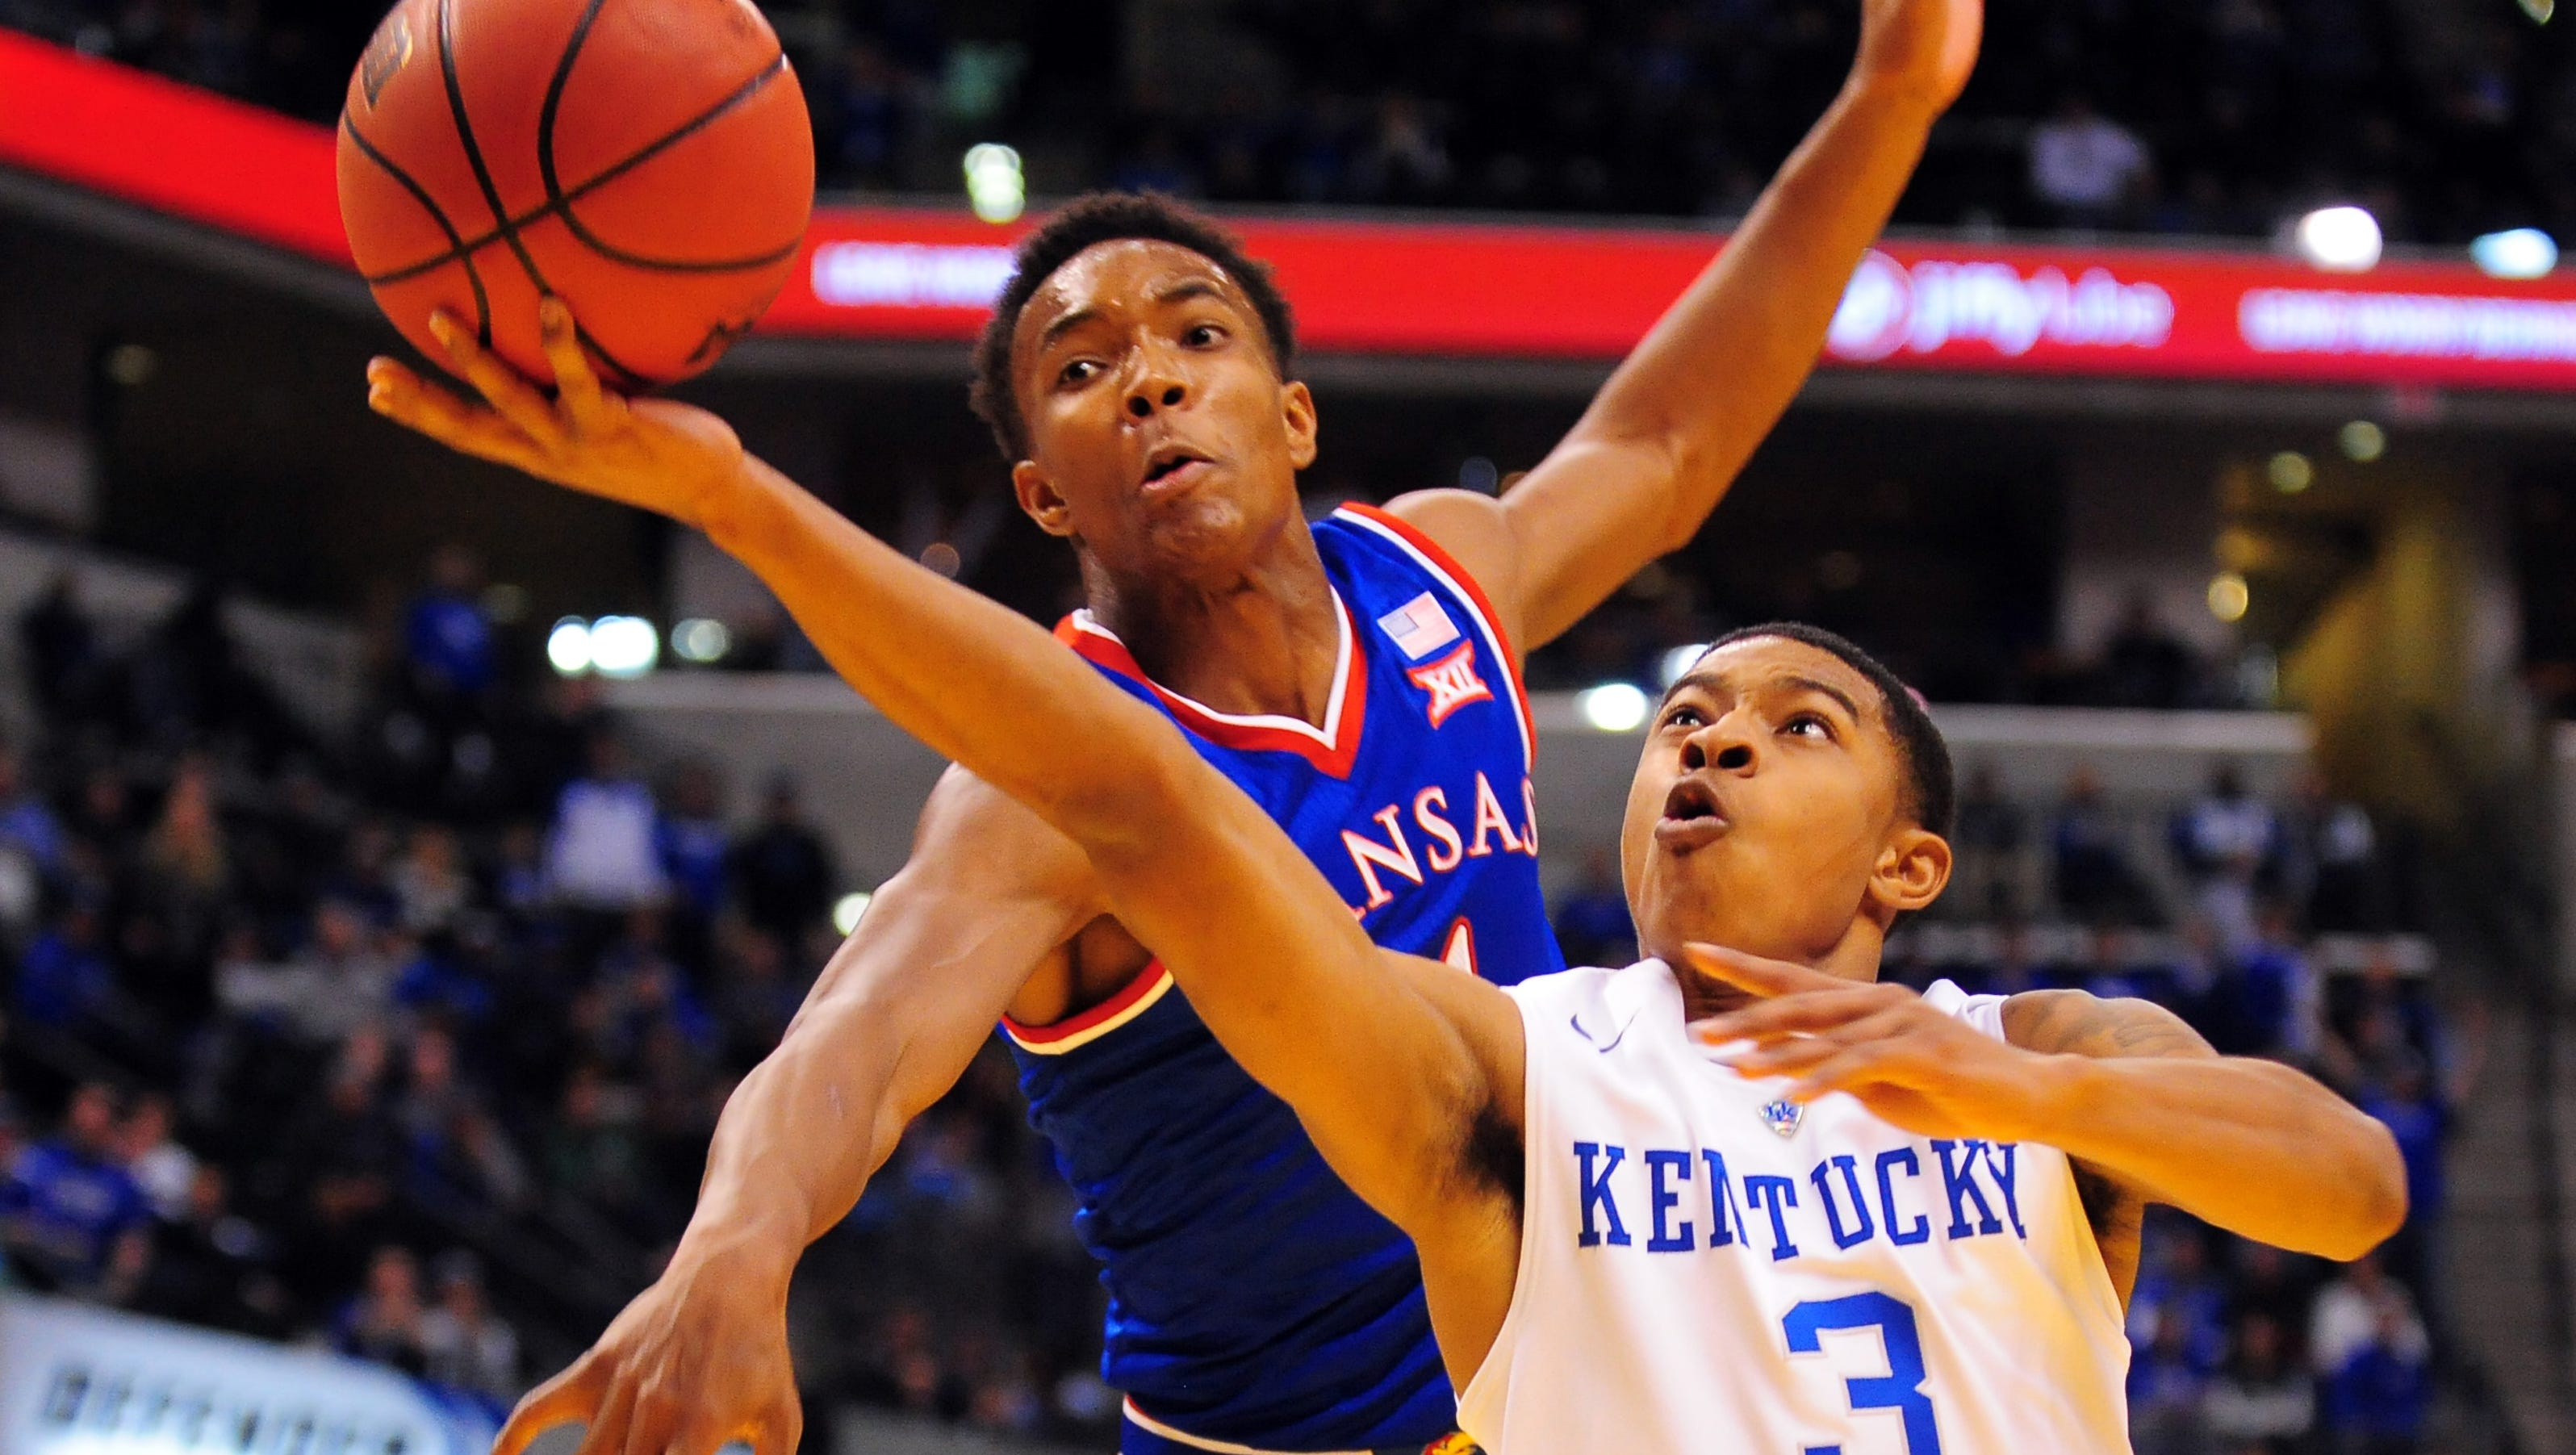 Is this the Kentucky team that could go undefeated?